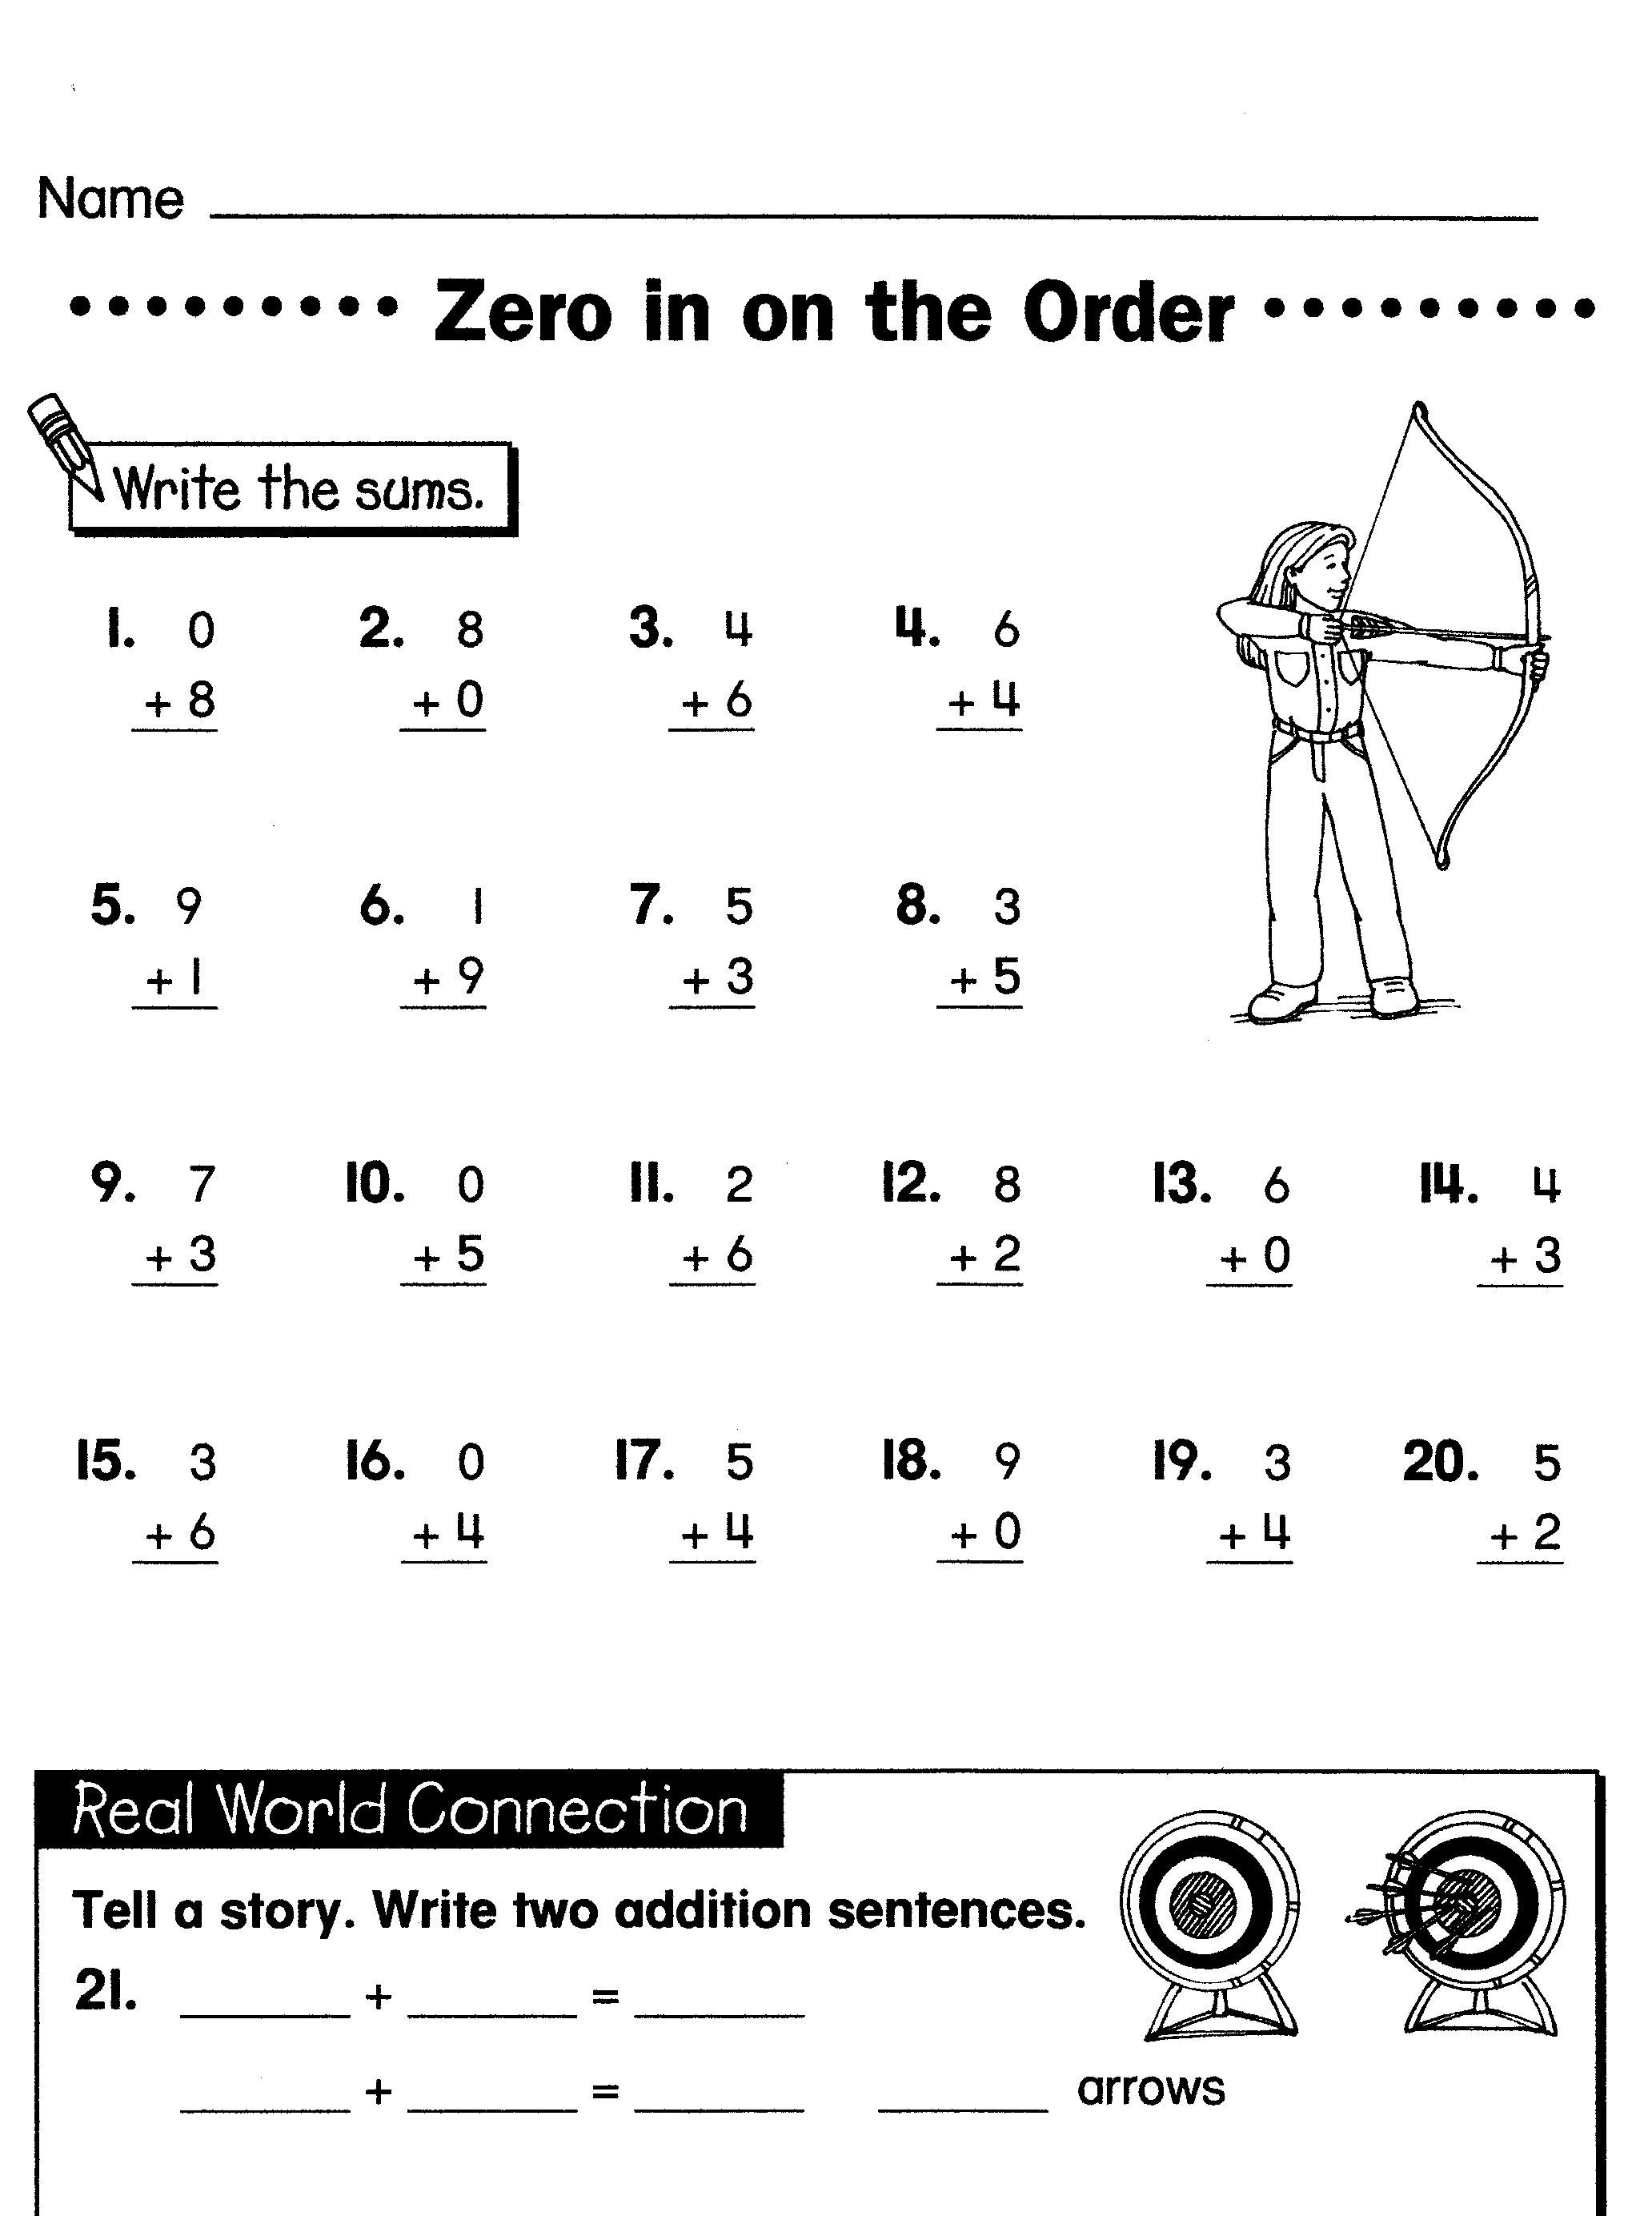 Worksheets 9th Grade Math Worksheets math sheets for grade 1 kiddo shelter kids worksheets printable to help your first elementary school learning mathematics effectively include the worksheet engl